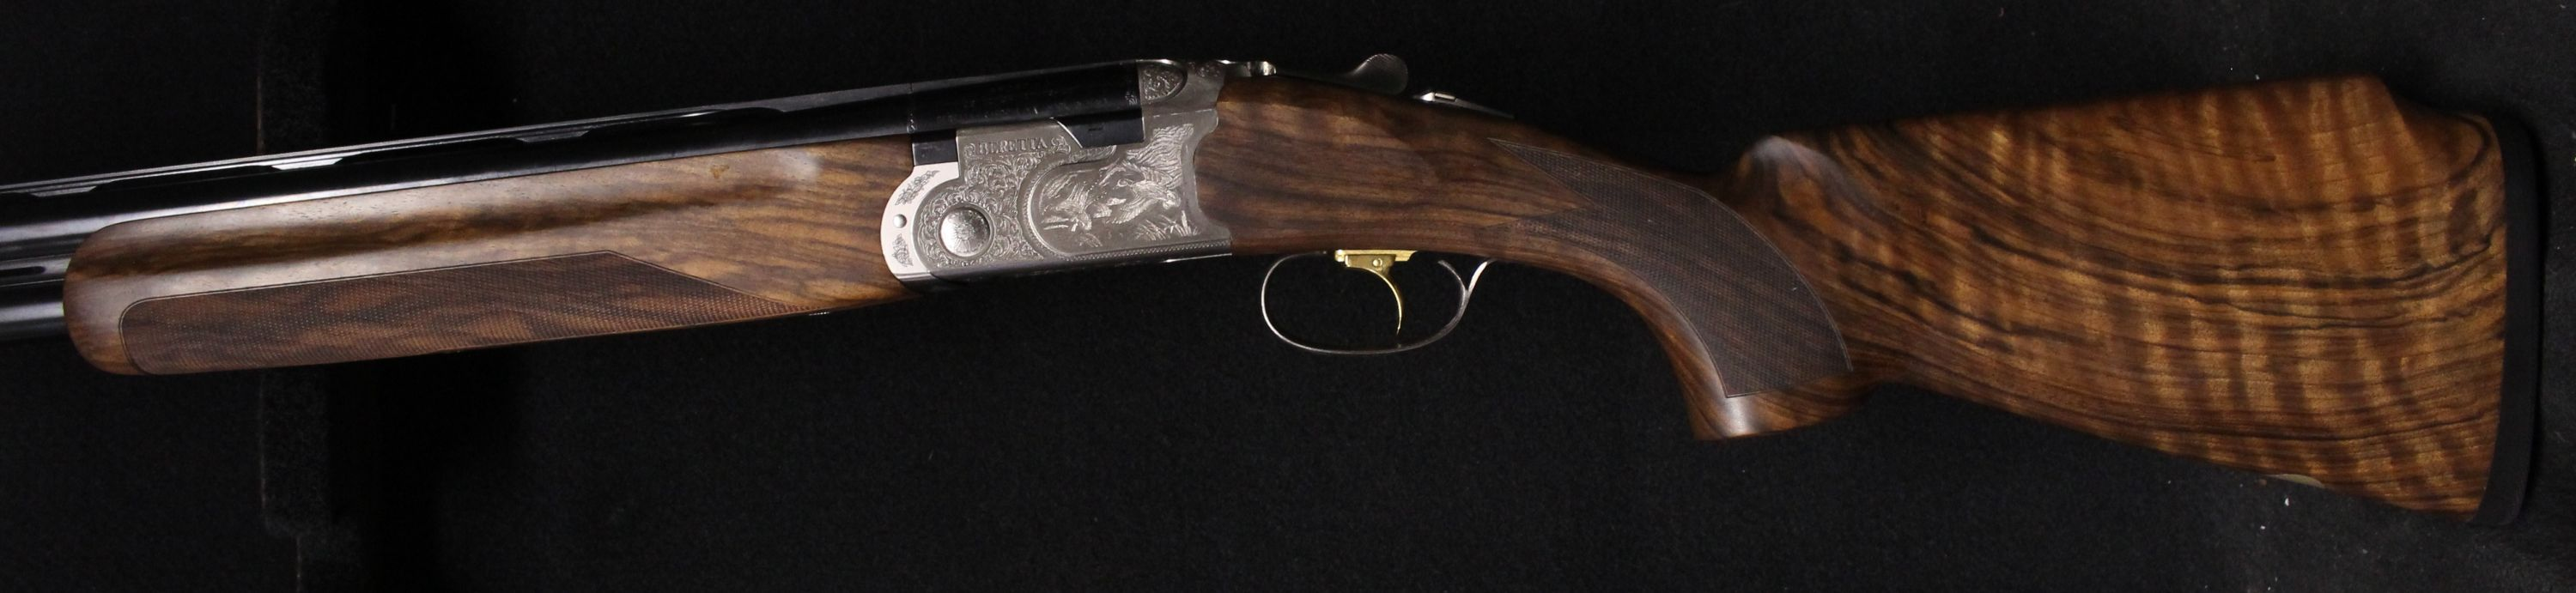 Beretta 687 Silver Pigeon III All Around